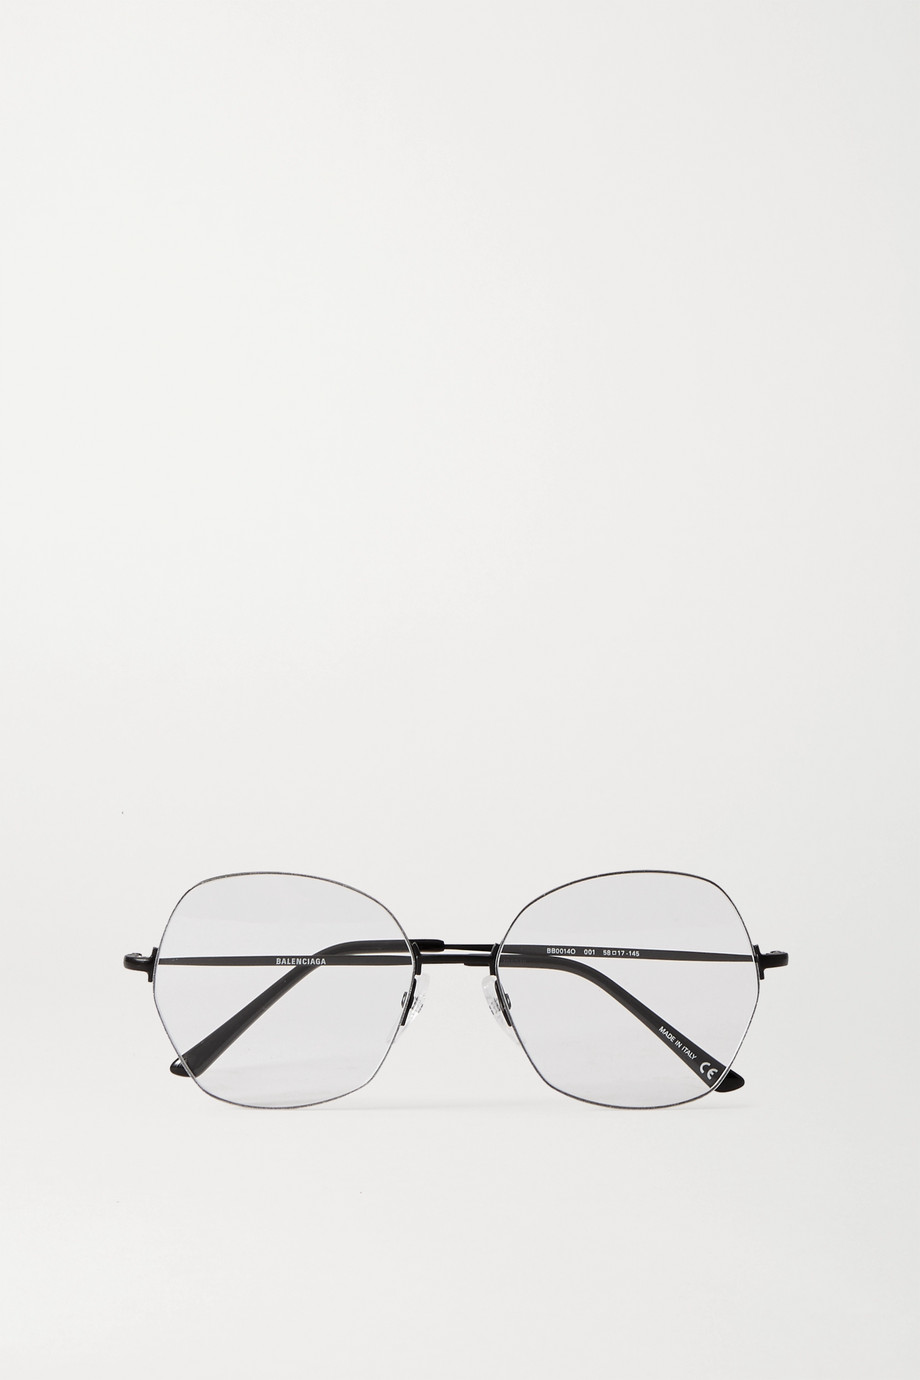 Balenciaga Round-frame metal optical glasses